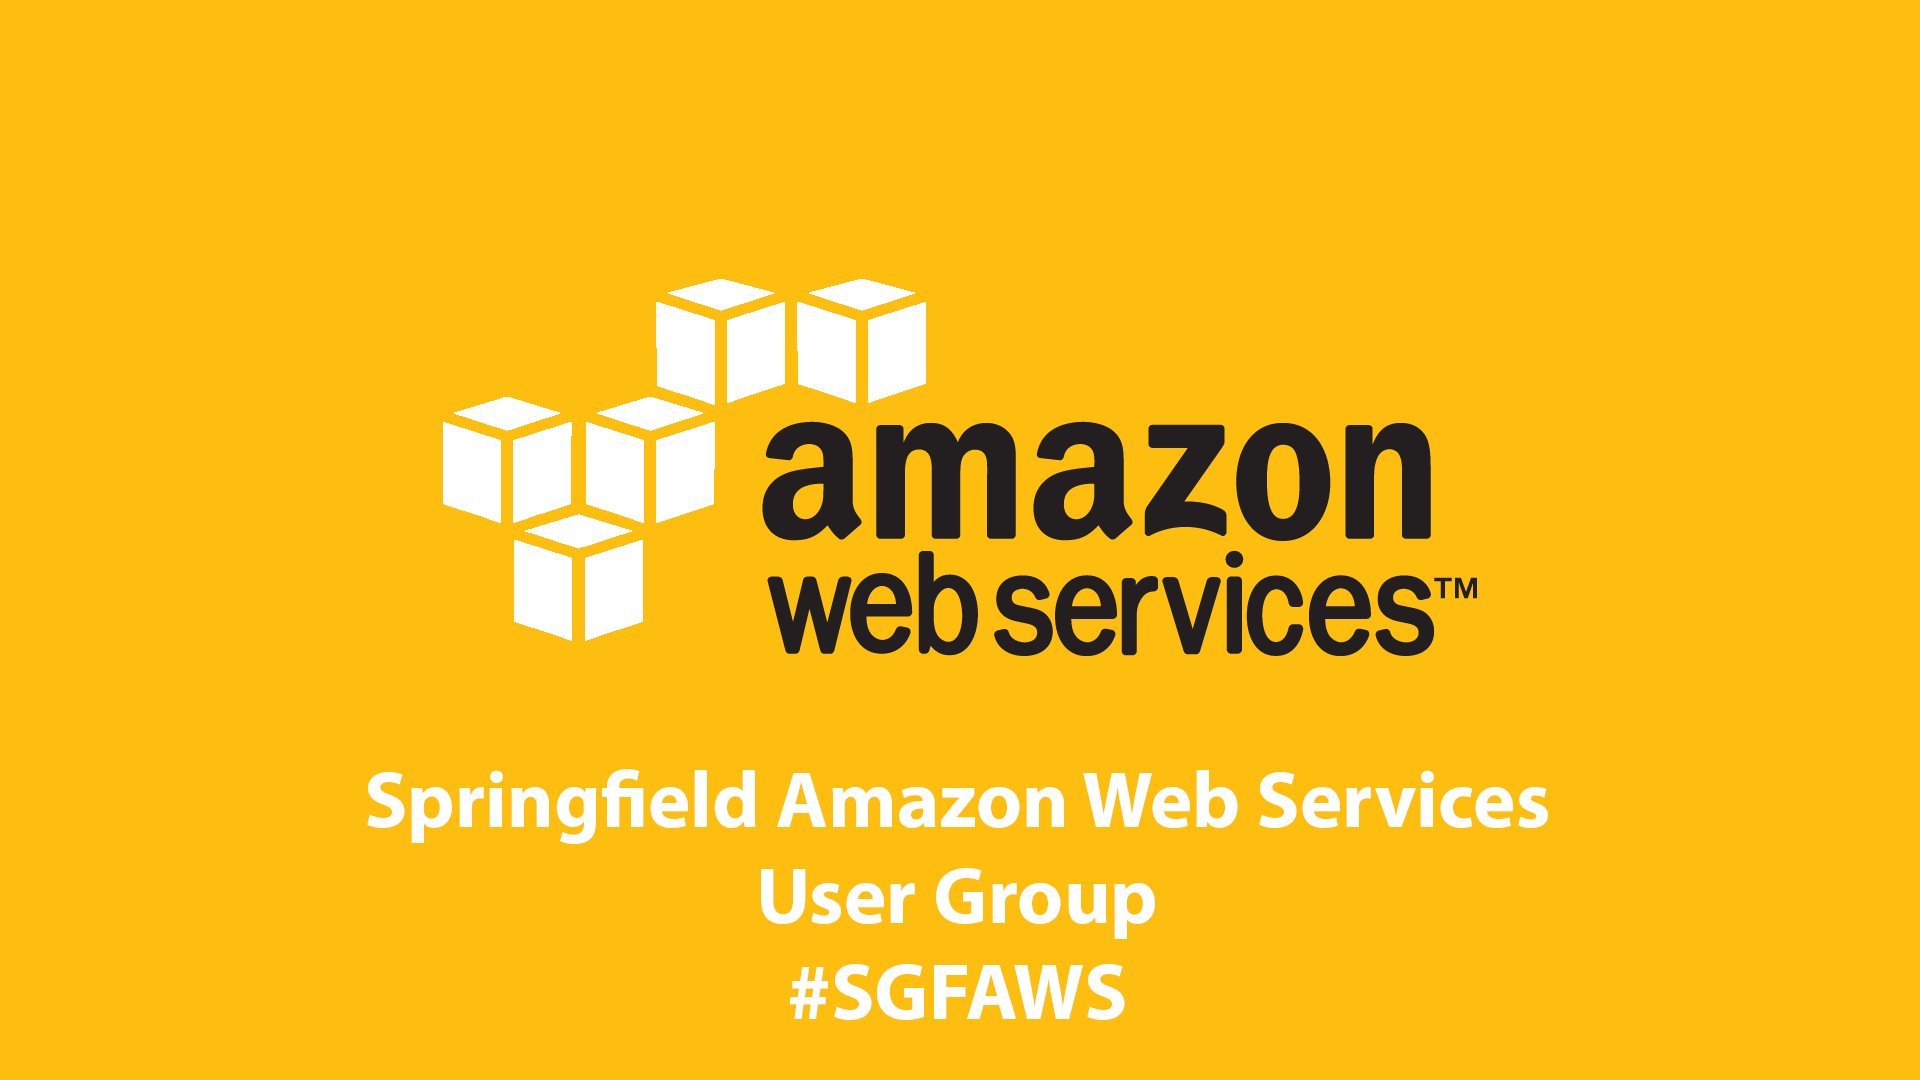 Springfield Amazon Web Services (SGF AWS) User Group